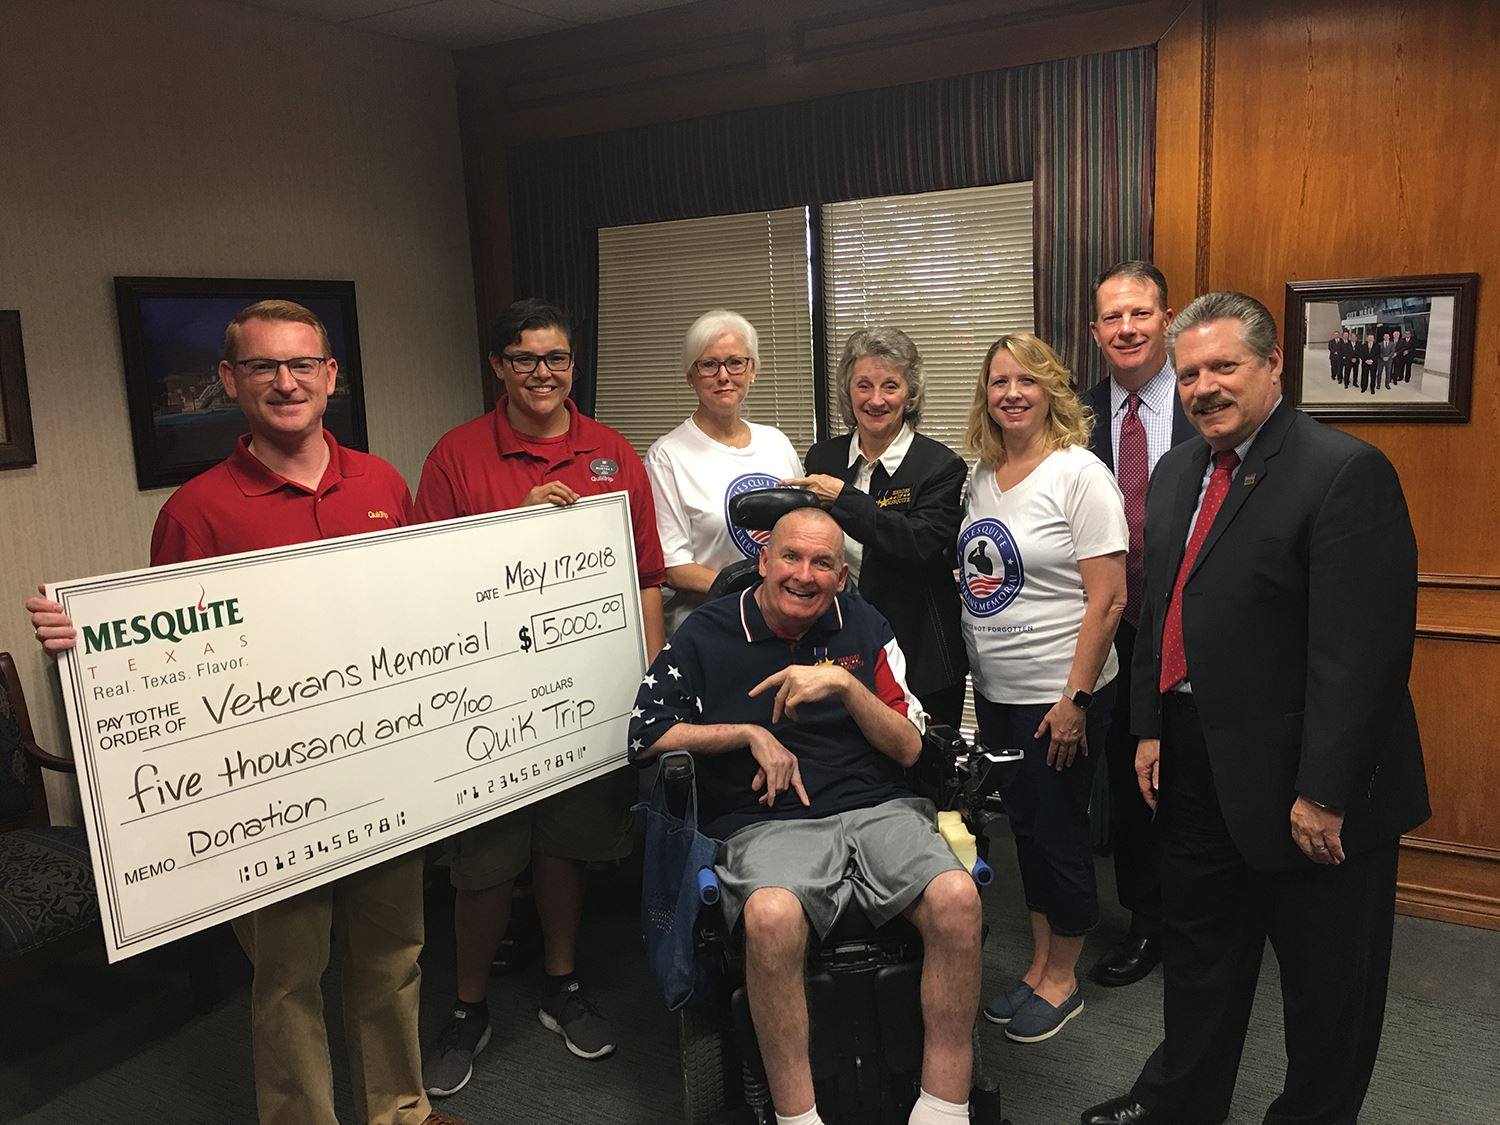 5-17-18 QuikTrip donates to Mesquite Veterans Memorial